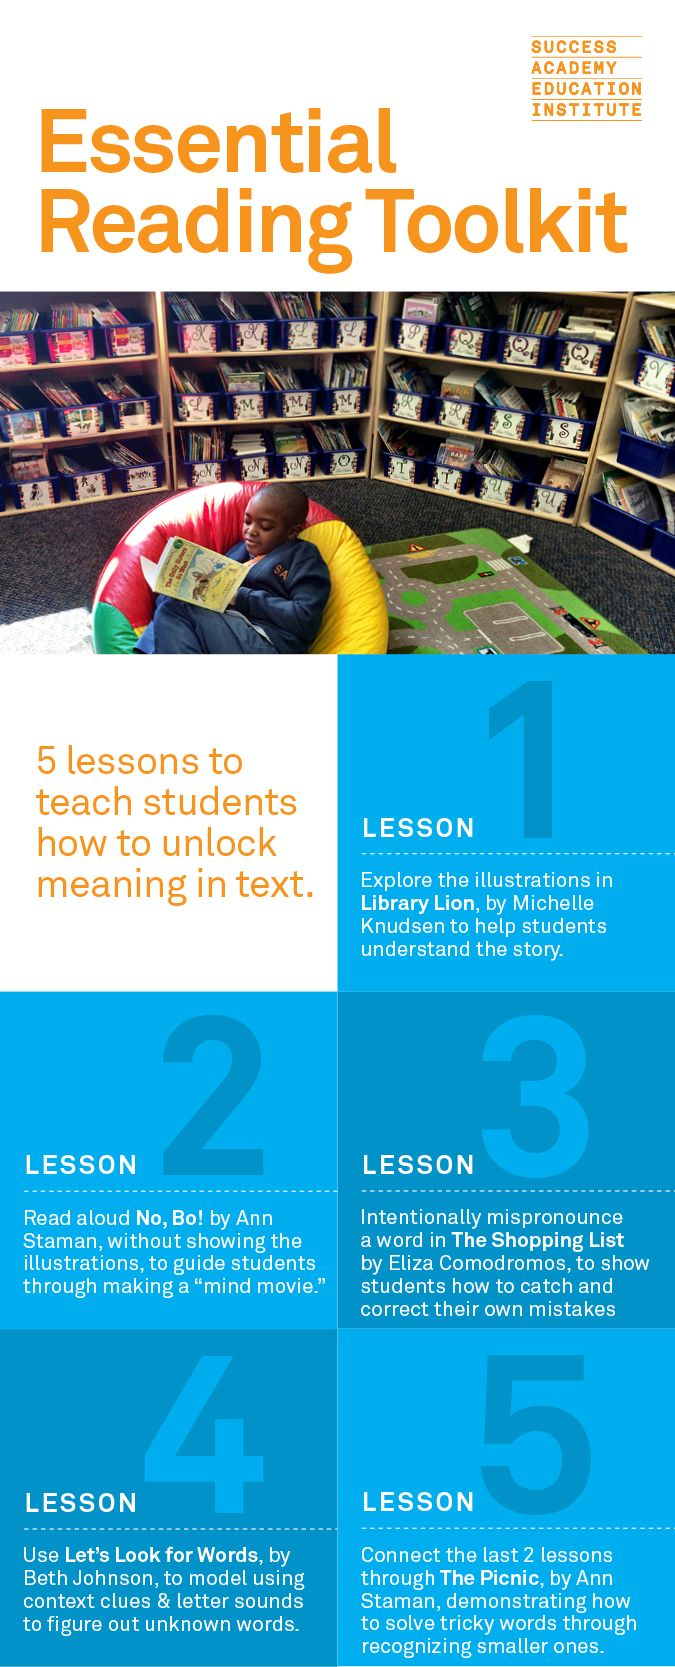 "5 Lessons for Unlocking Meaning in Text | Your kindergarten students can master reading comprehension with these reading lessons. This free Common Core aligned unit also includes book recommendations, including the 'The Library Lion"" and ""Let's Look for Words."" See the full outline on the Success Academy Ed Institutute."